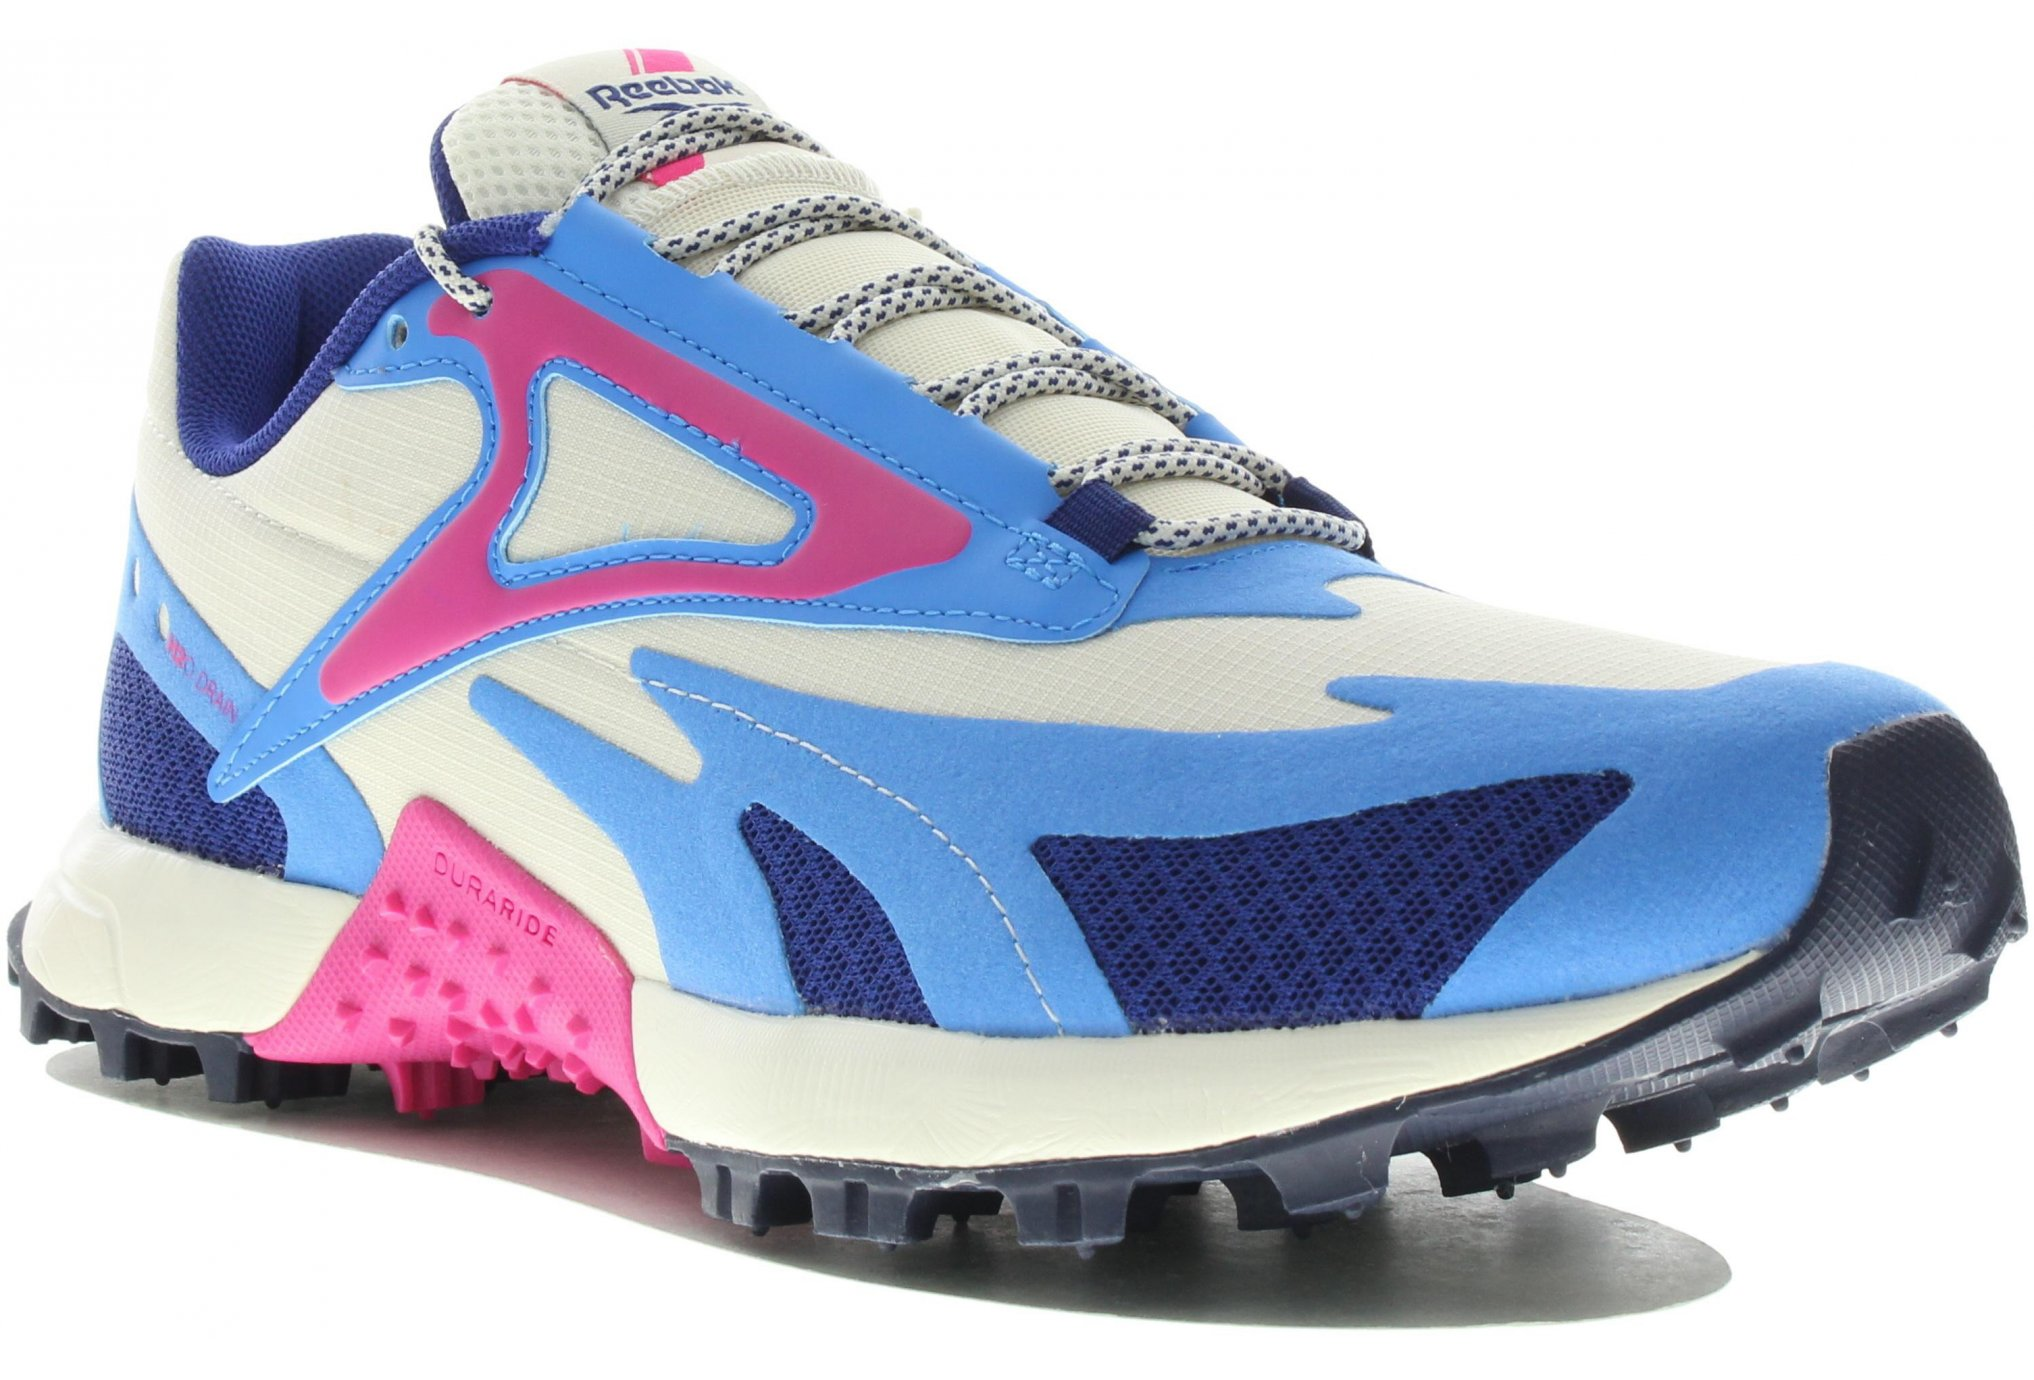 Reebok All Terrain Craze 2.0 Chaussures running femme